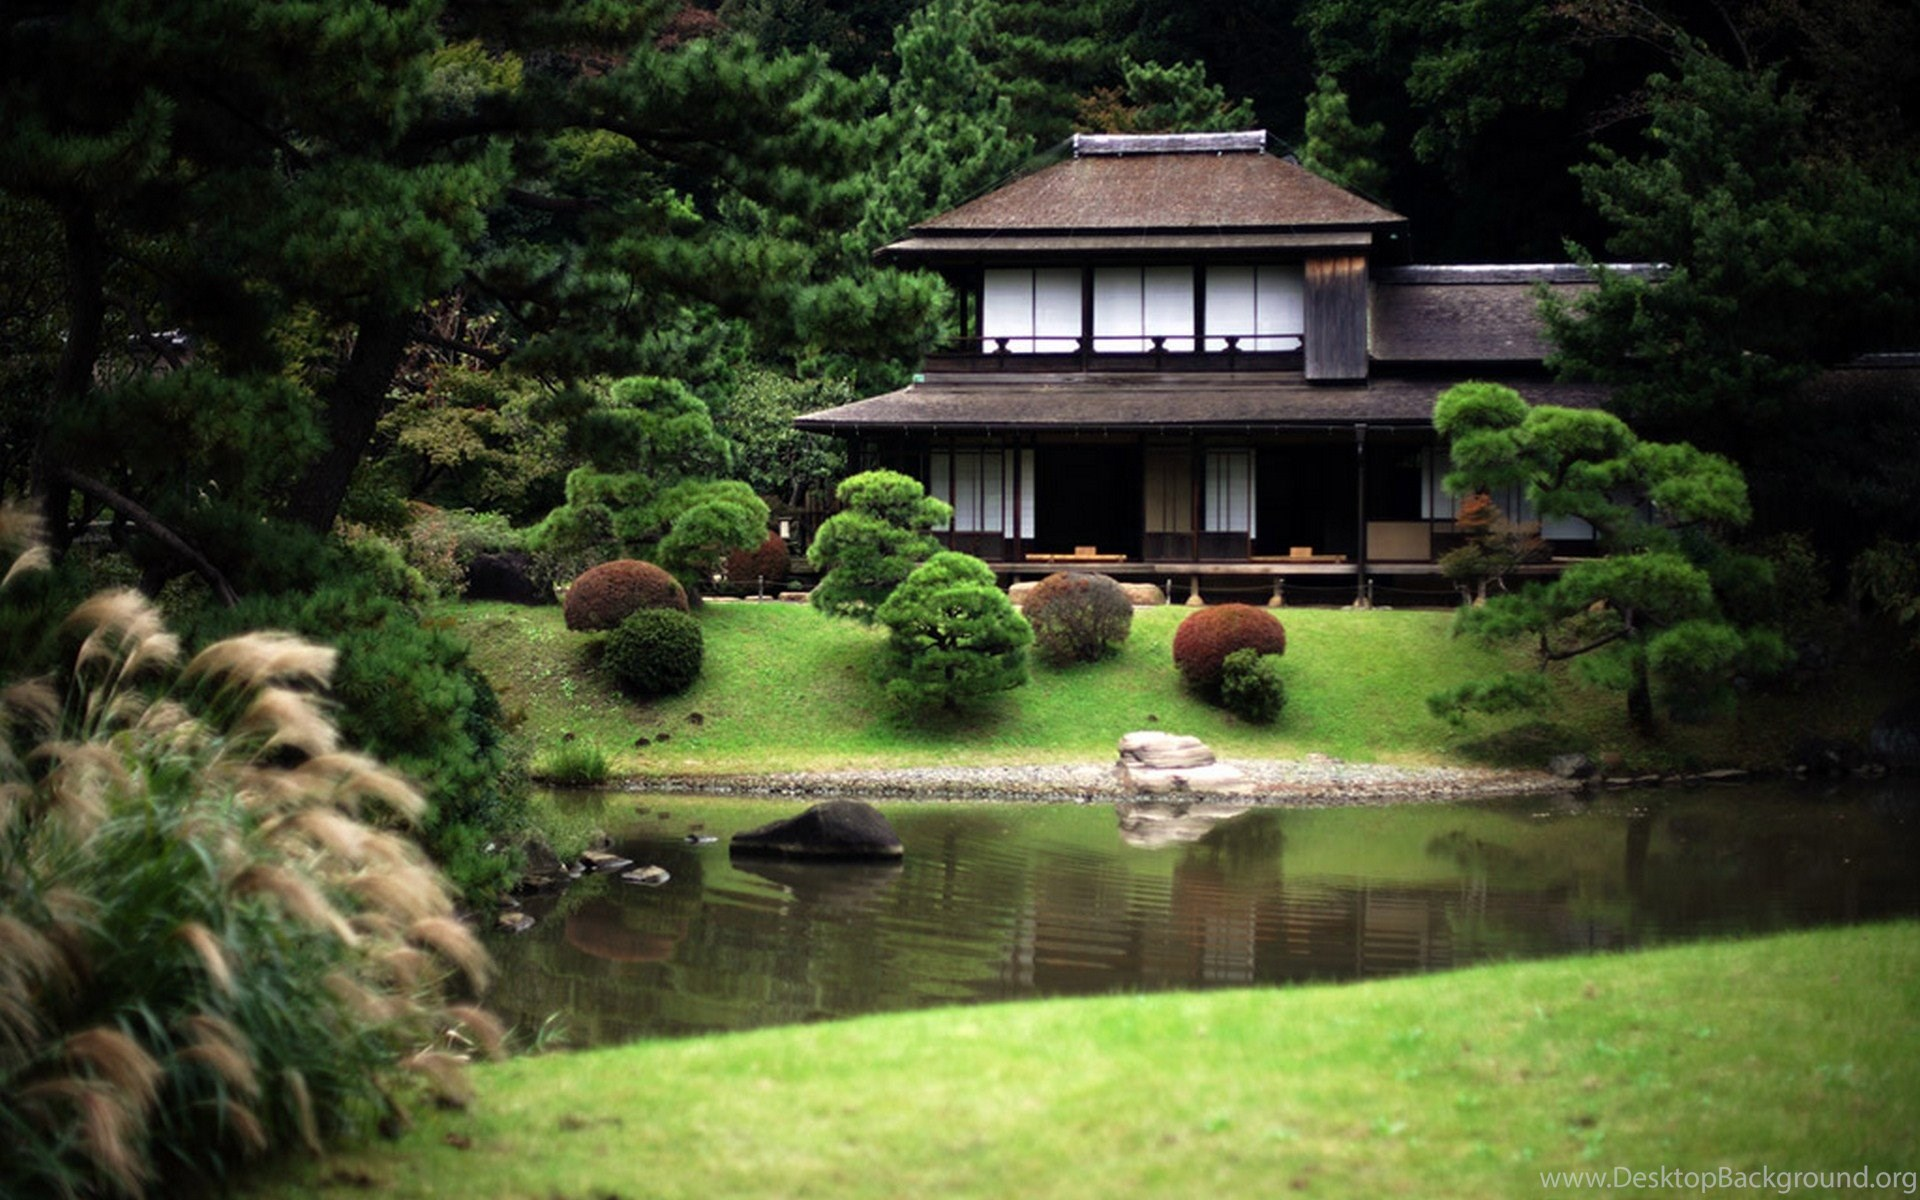 chuorinkan and kignae houses in tokoyo japan Discover 45 hidden attractions, cool sights, and unusual things to do in tokyo, japan from ghibli museum to tokyo tower wax museum's progressive rock room 45 cool, hidden, and unusual things to do in tokyo, japan.